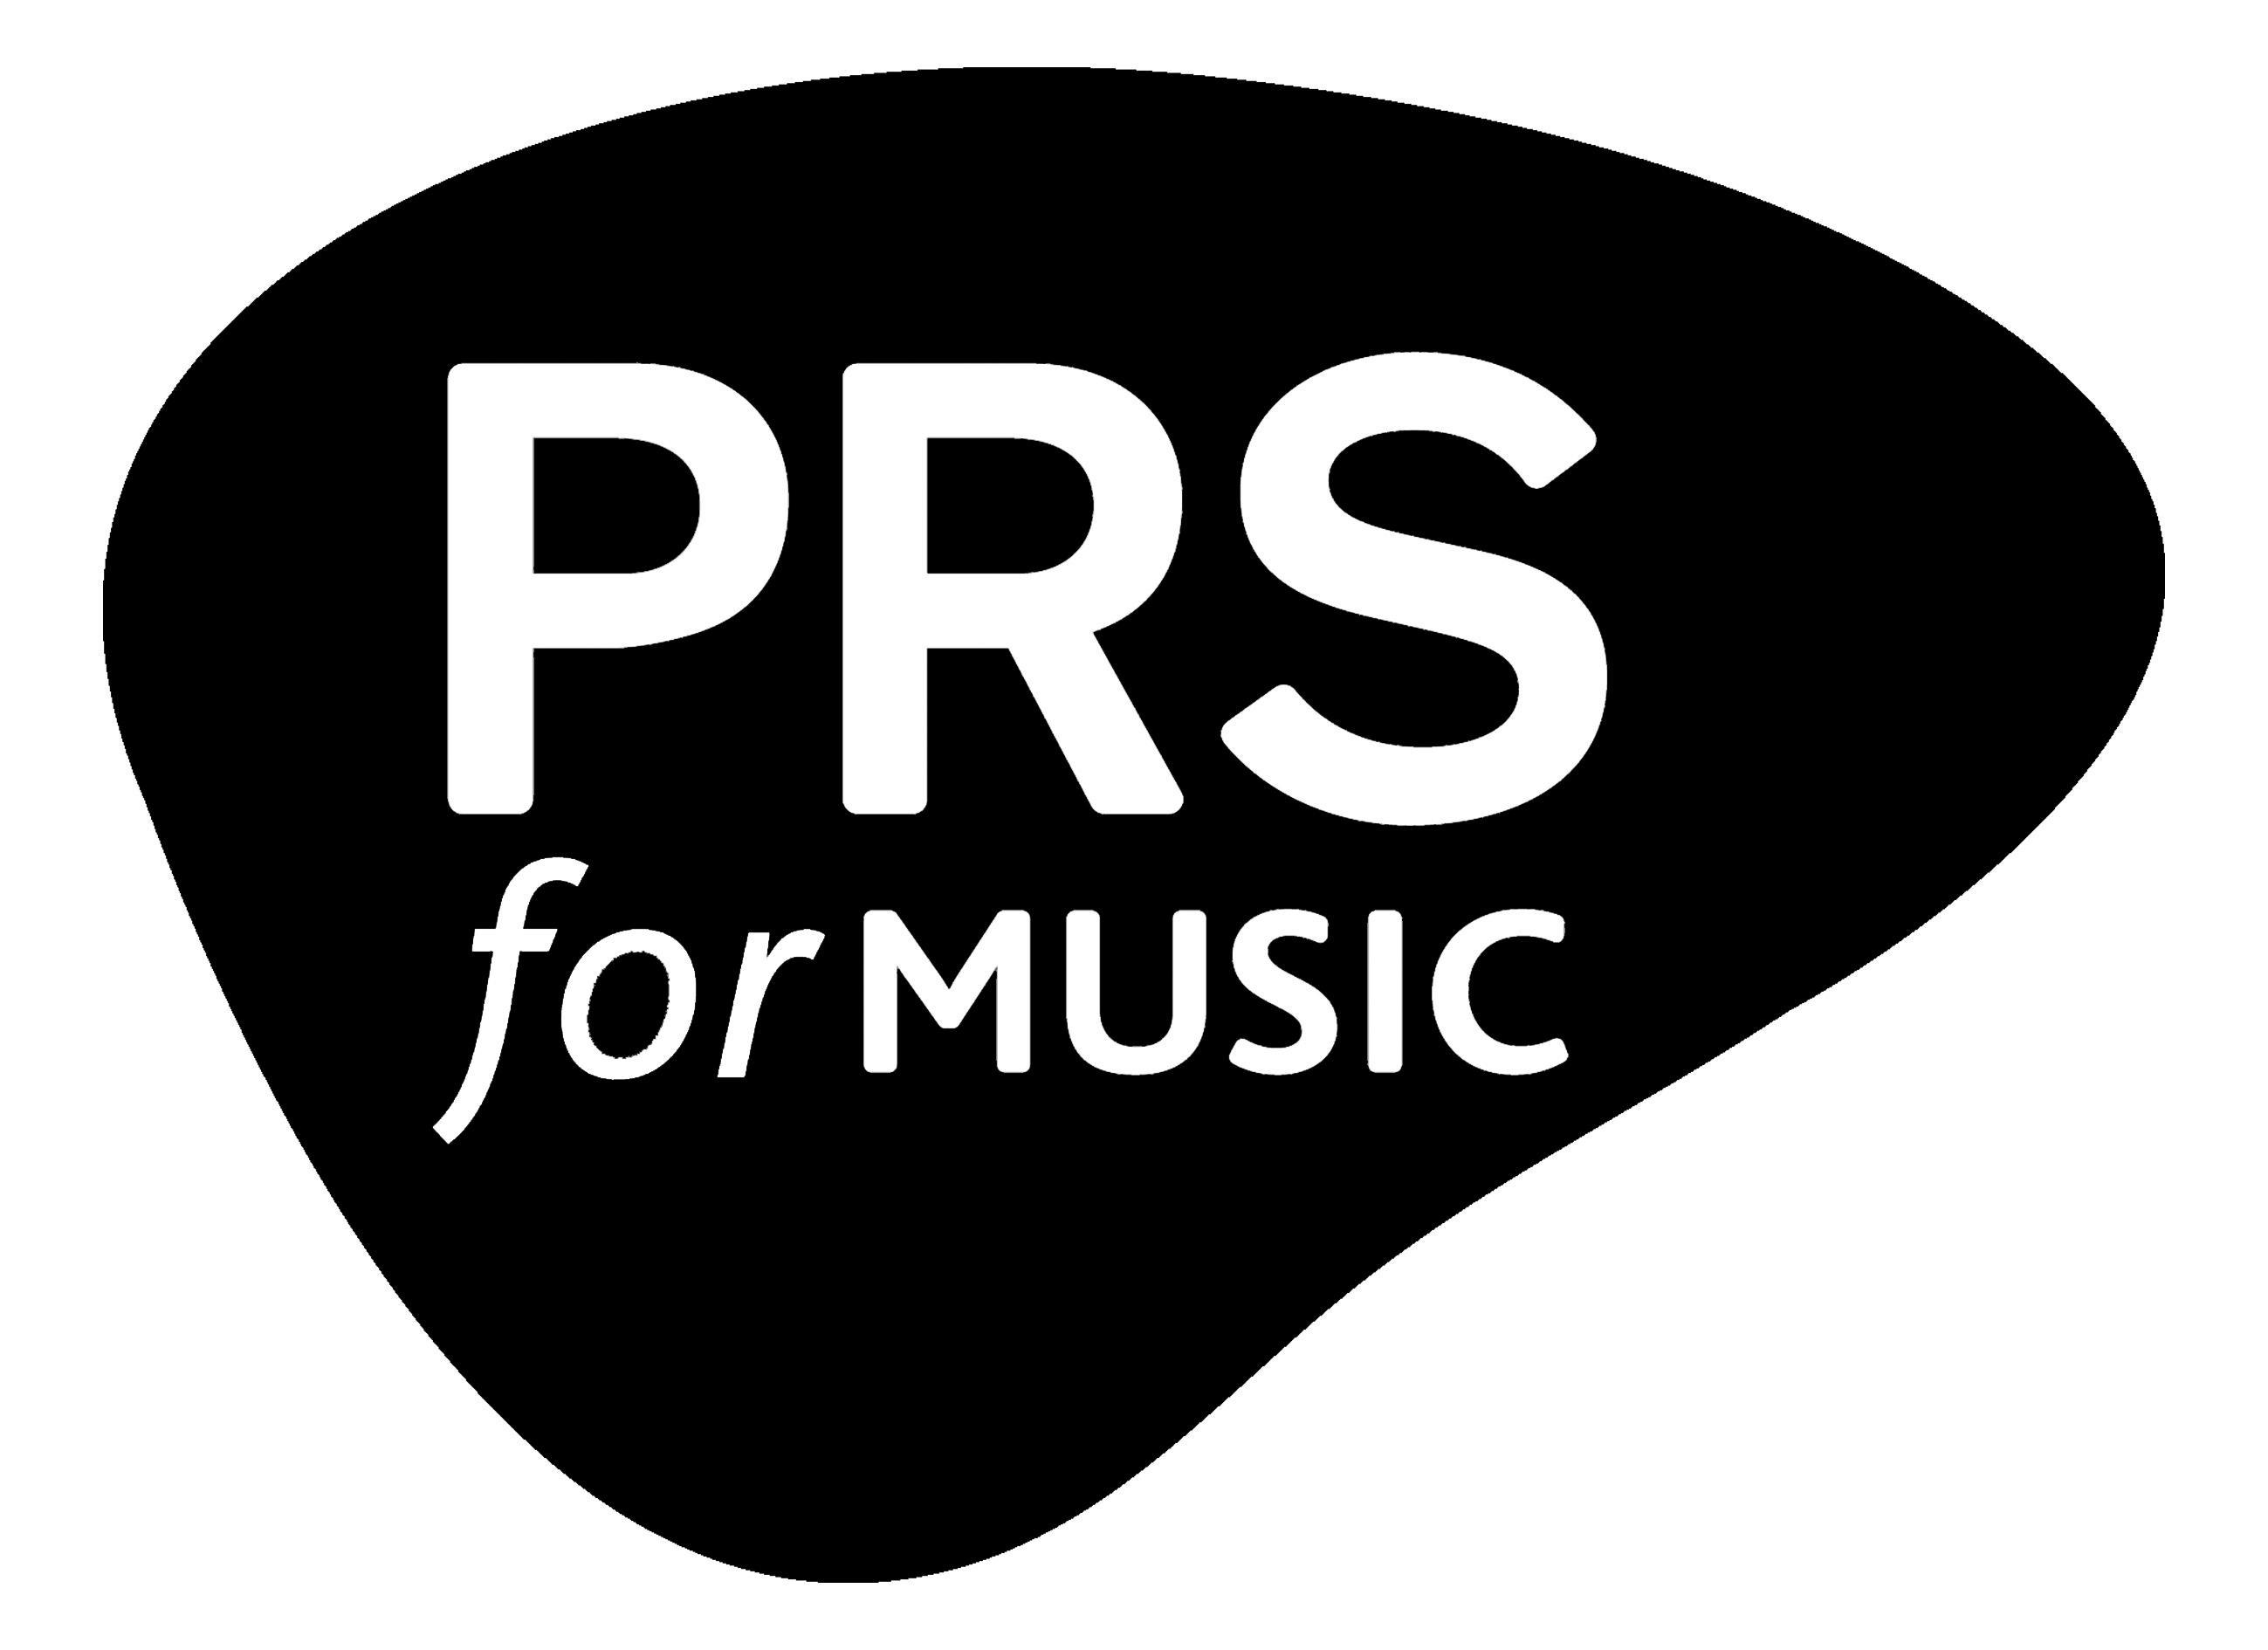 PRS for Music logo (black)